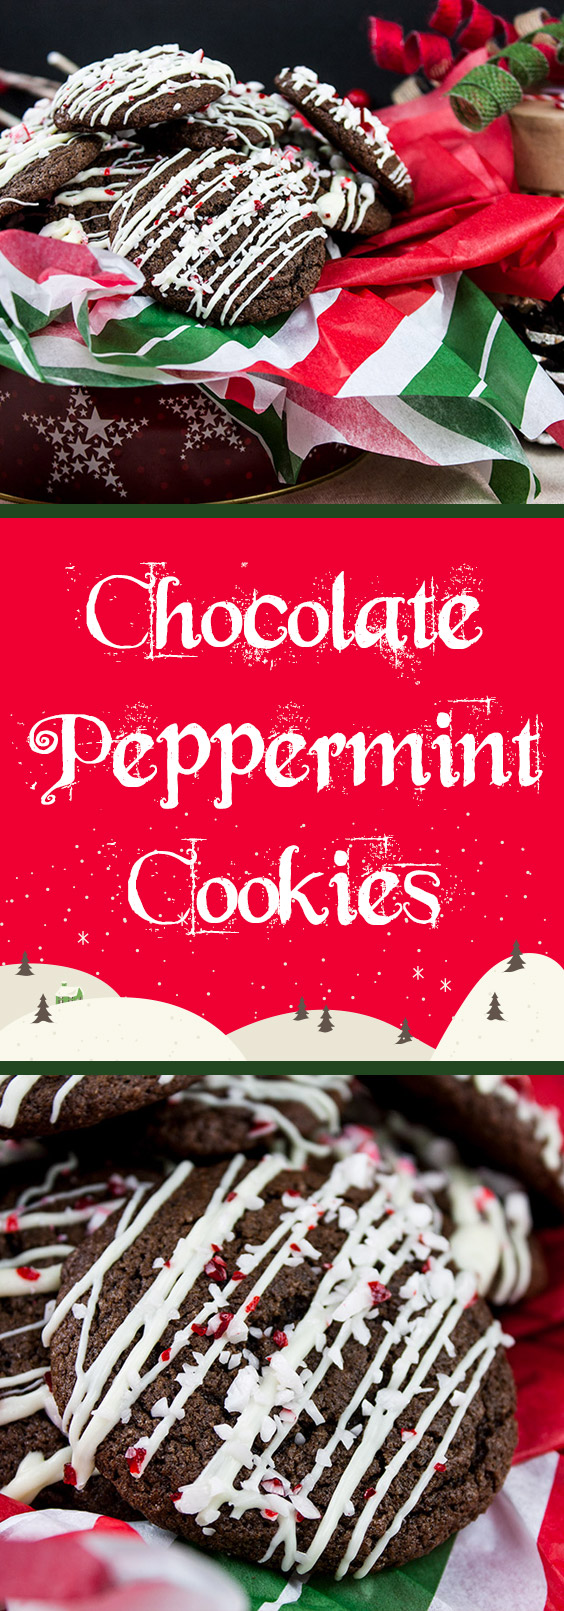 Chocolate Peppermint Cookies - A rich, dark chocolate cookie with just the right amount of peppermint flavor drizzled with white chocolate and topped with crushed peppermint candy canes.